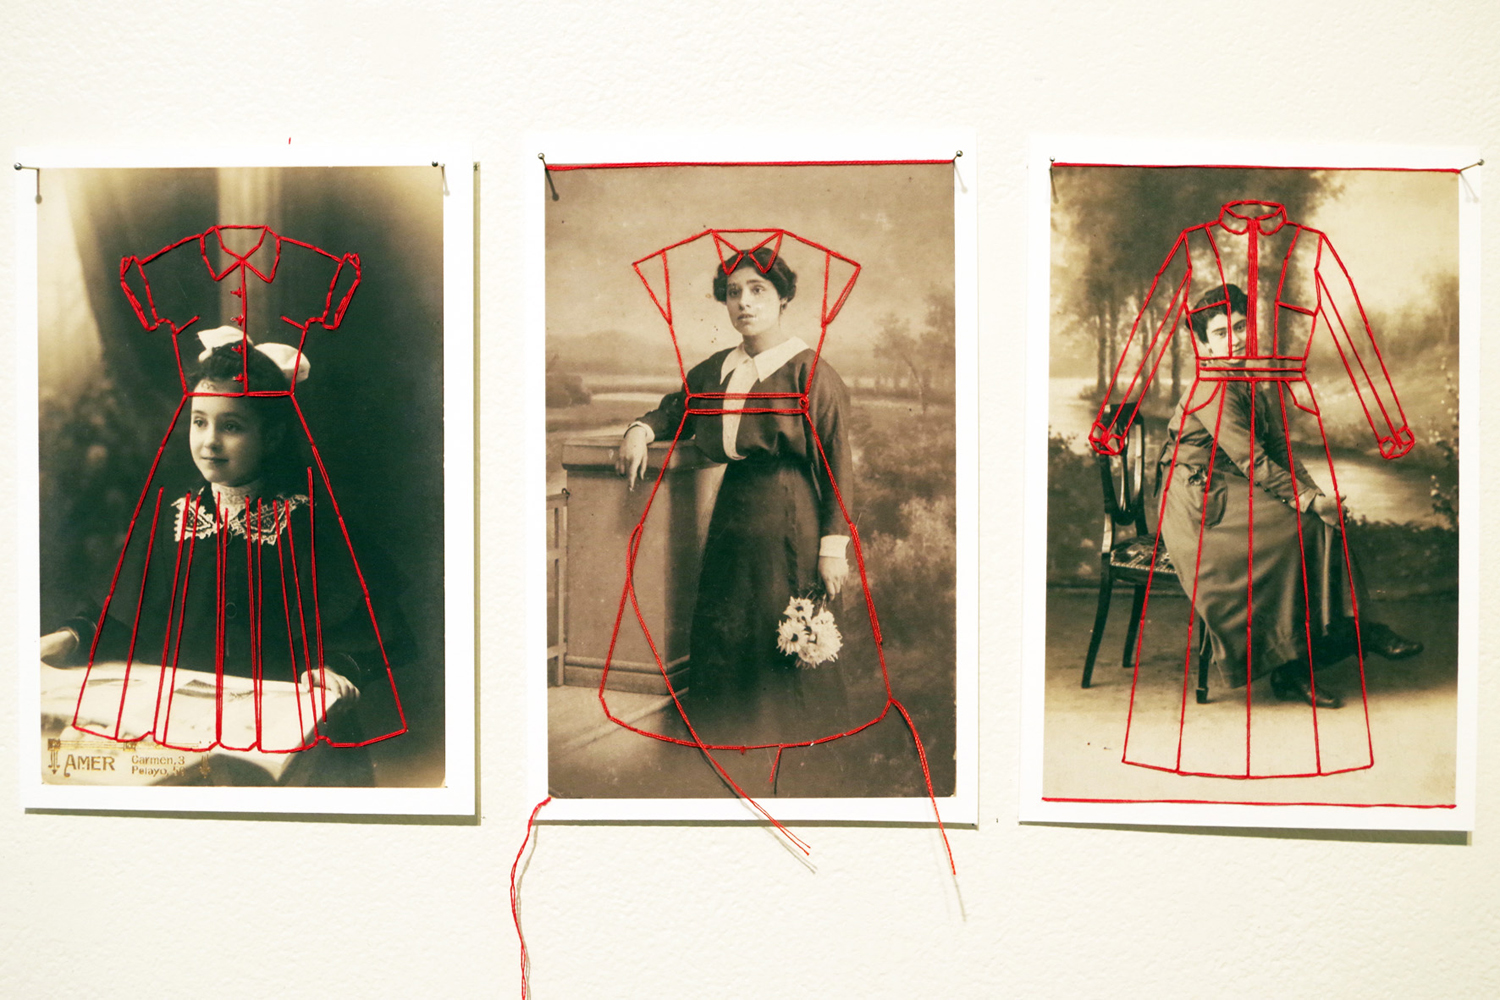 2. 'Unos Cuantos Piquetitos (A Few Small Nips)', Eva Fernandez, inkjet print on Hahnemukle paper, thread, $200 each